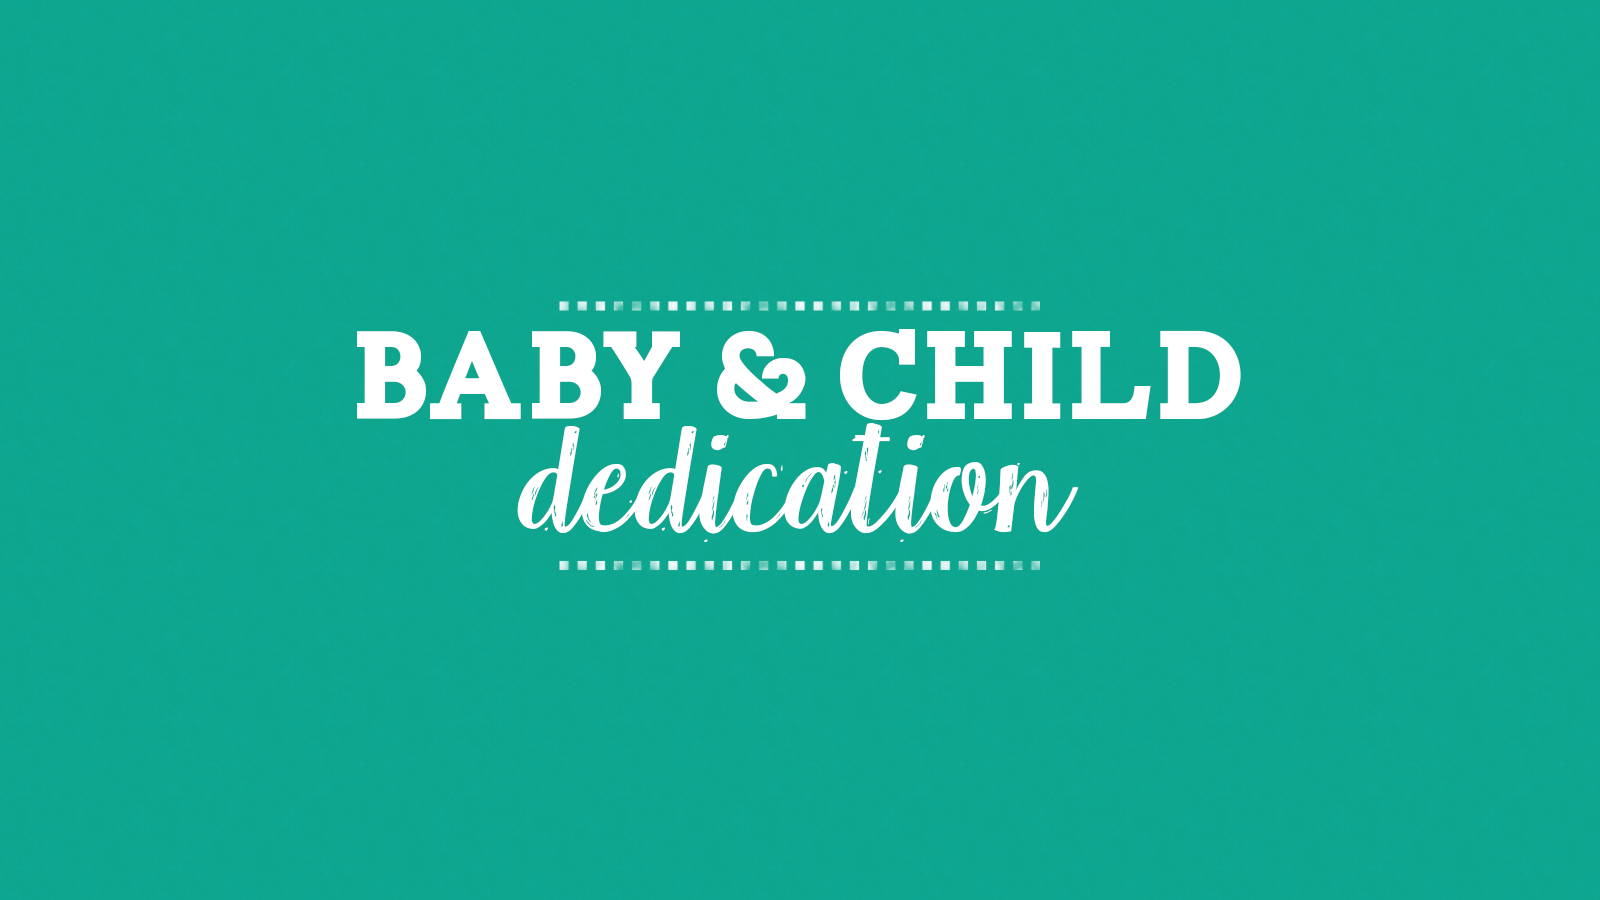 Baby  child dedication